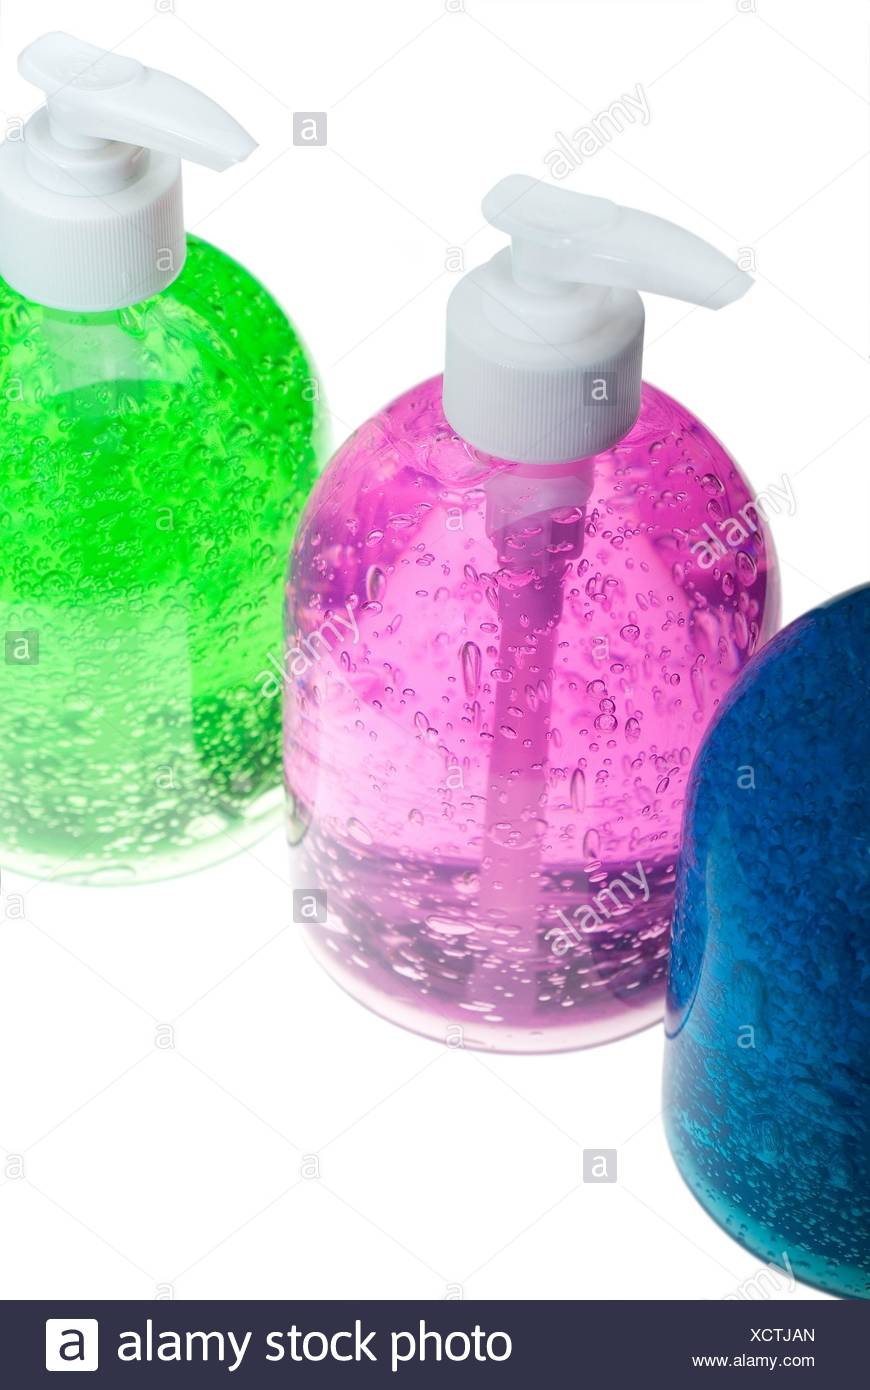 colorfull blue,pink and green hair gel bottles over white background. - Stock Image